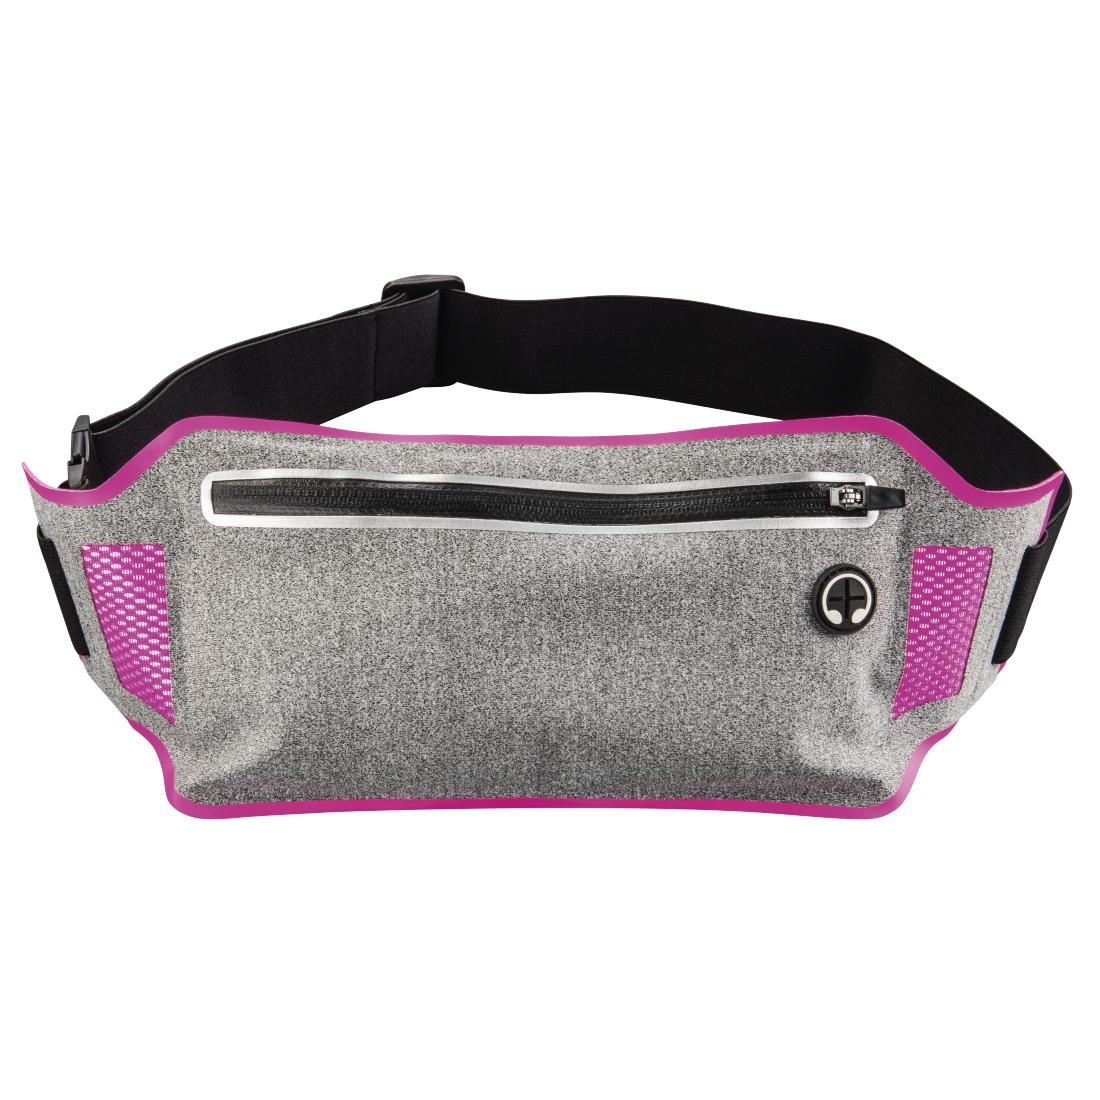 abx High-Res Image - Hama, Running Sports Hip Pouch for Smartphones, grey/pink